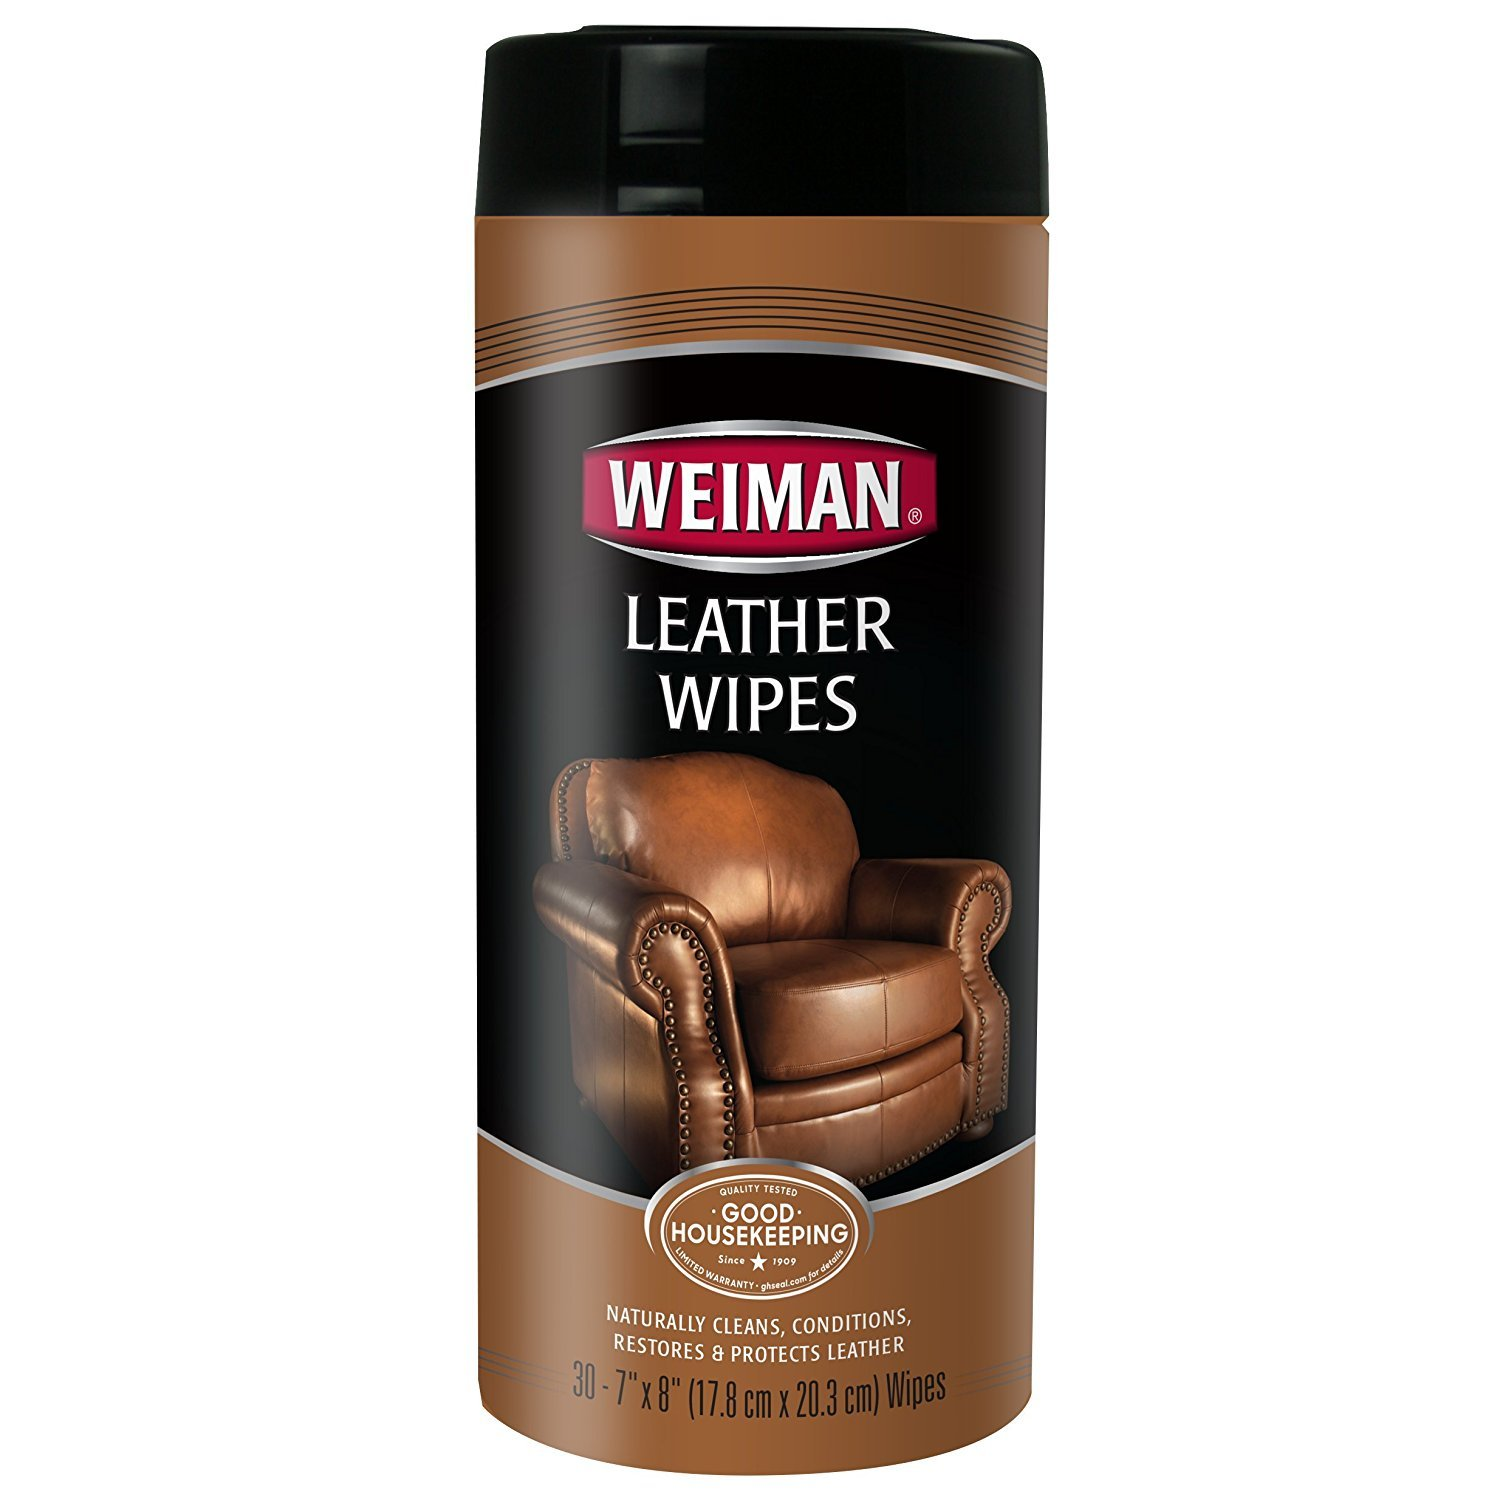 Weiman Leather Wipes, 30 Ct, 5 Pack